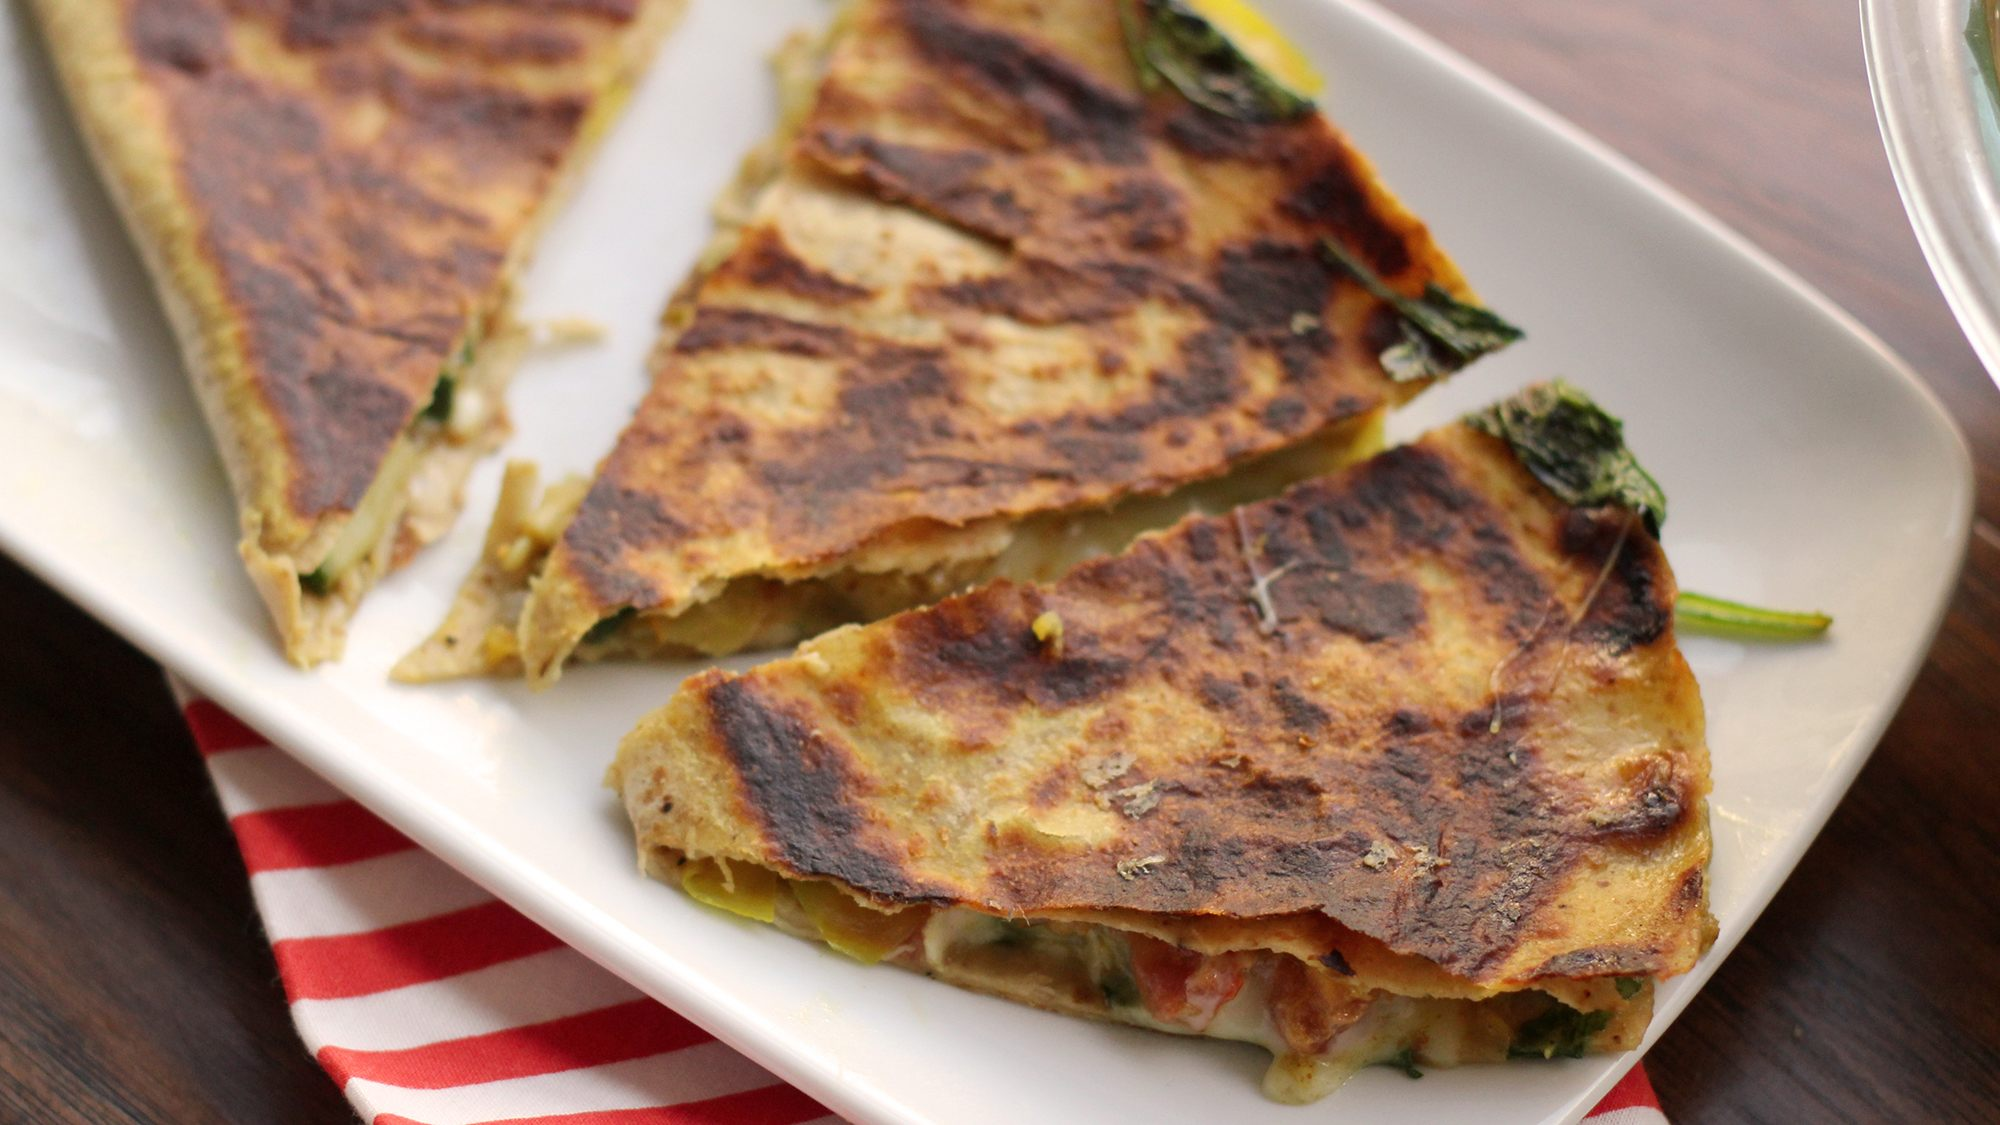 McCormick Gourmet Curried Mushroom and Spinach Quesadillas